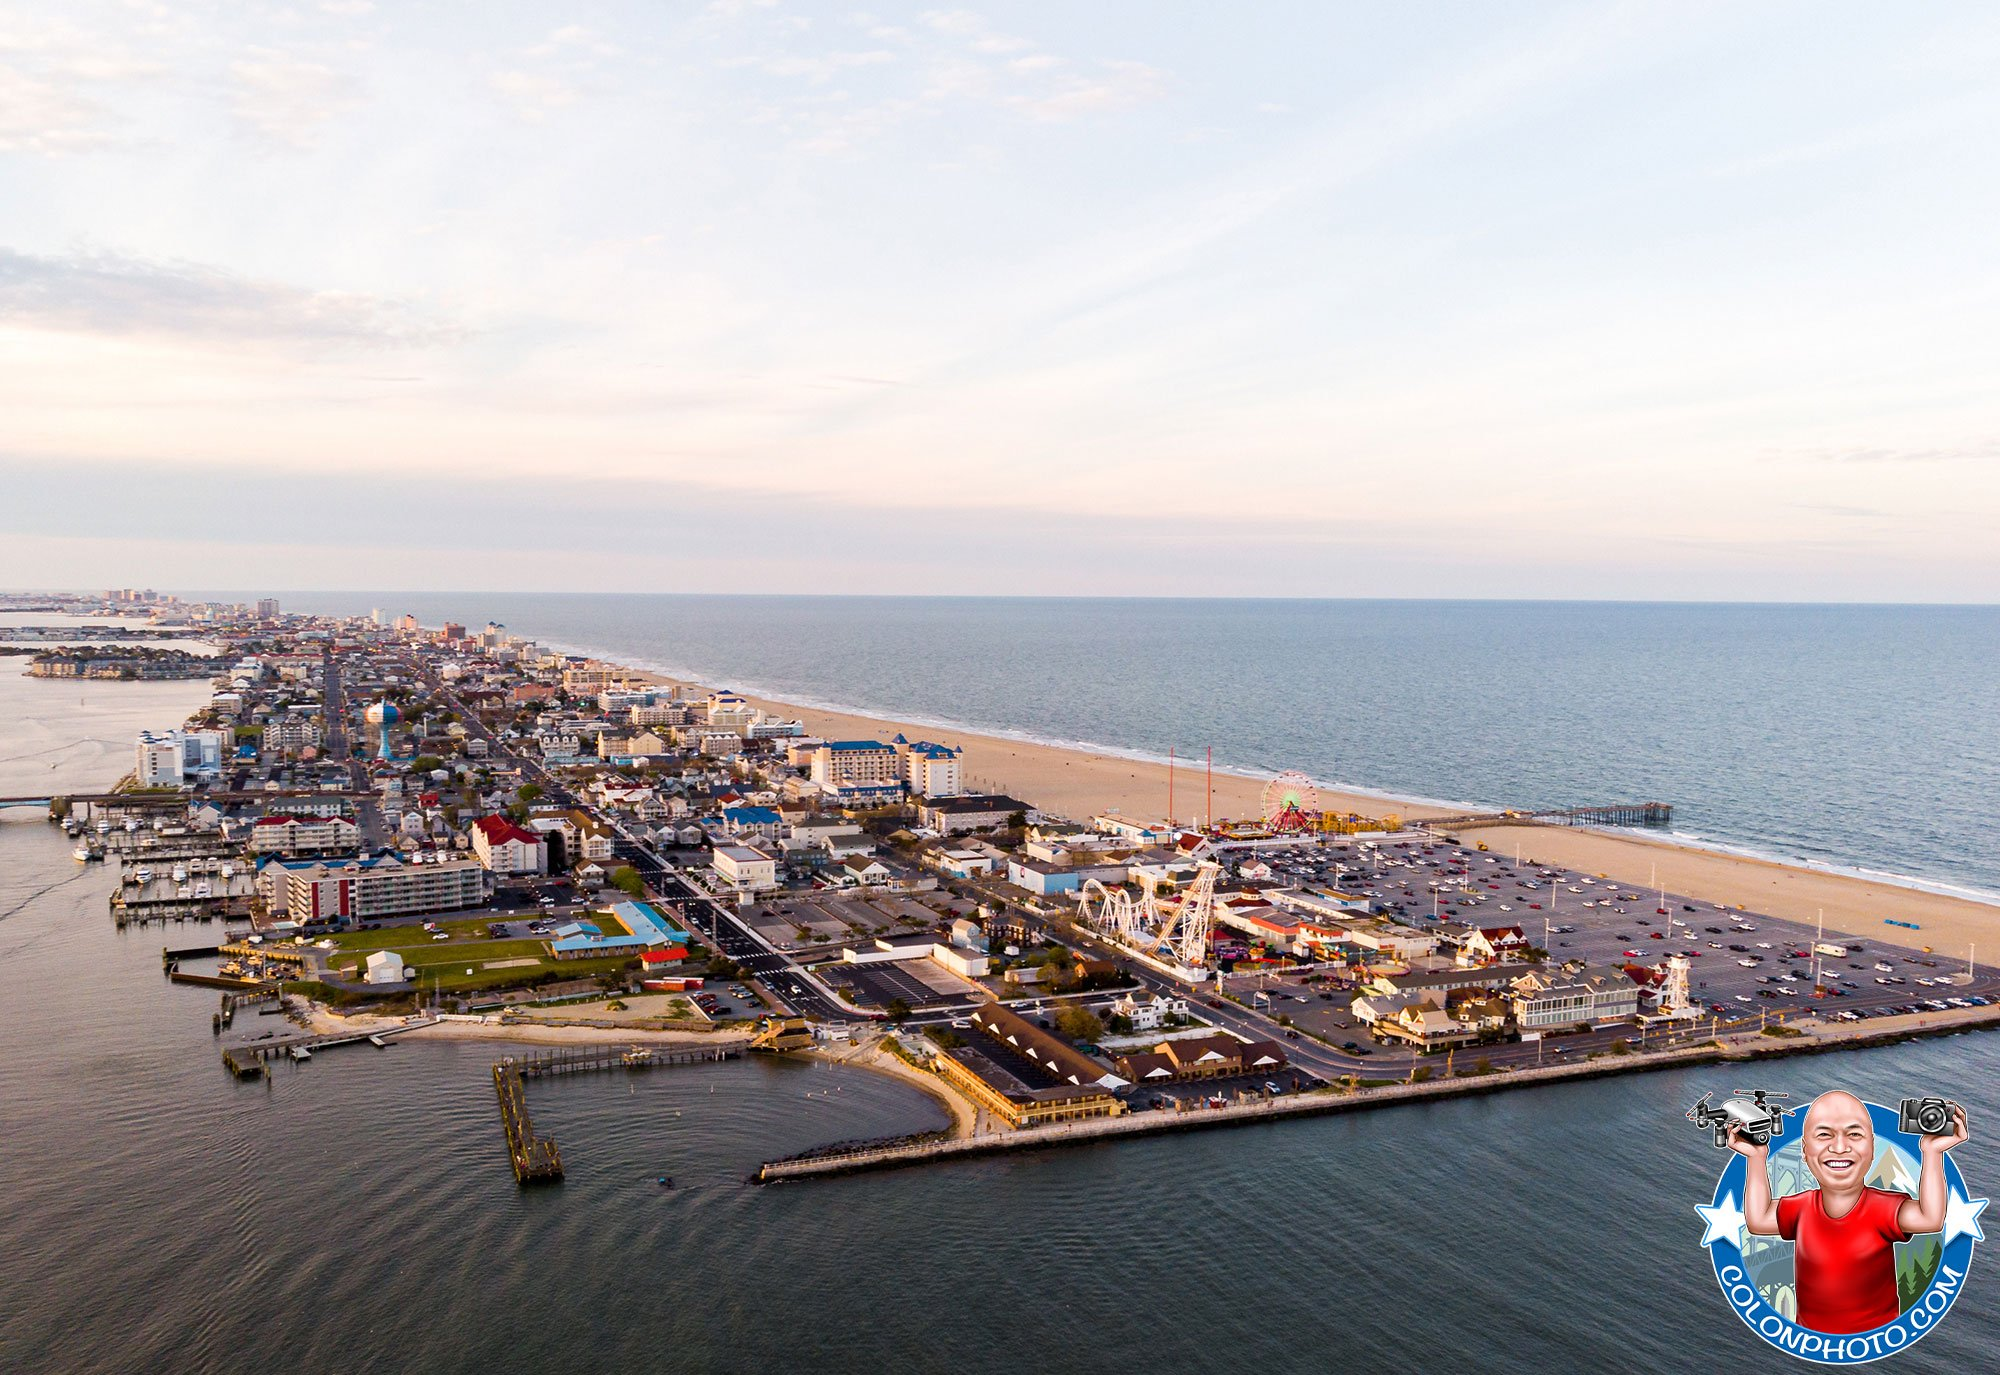 OCEAN-CITY-MARYLAND---DRONE-PHOTO---colonphoto.com